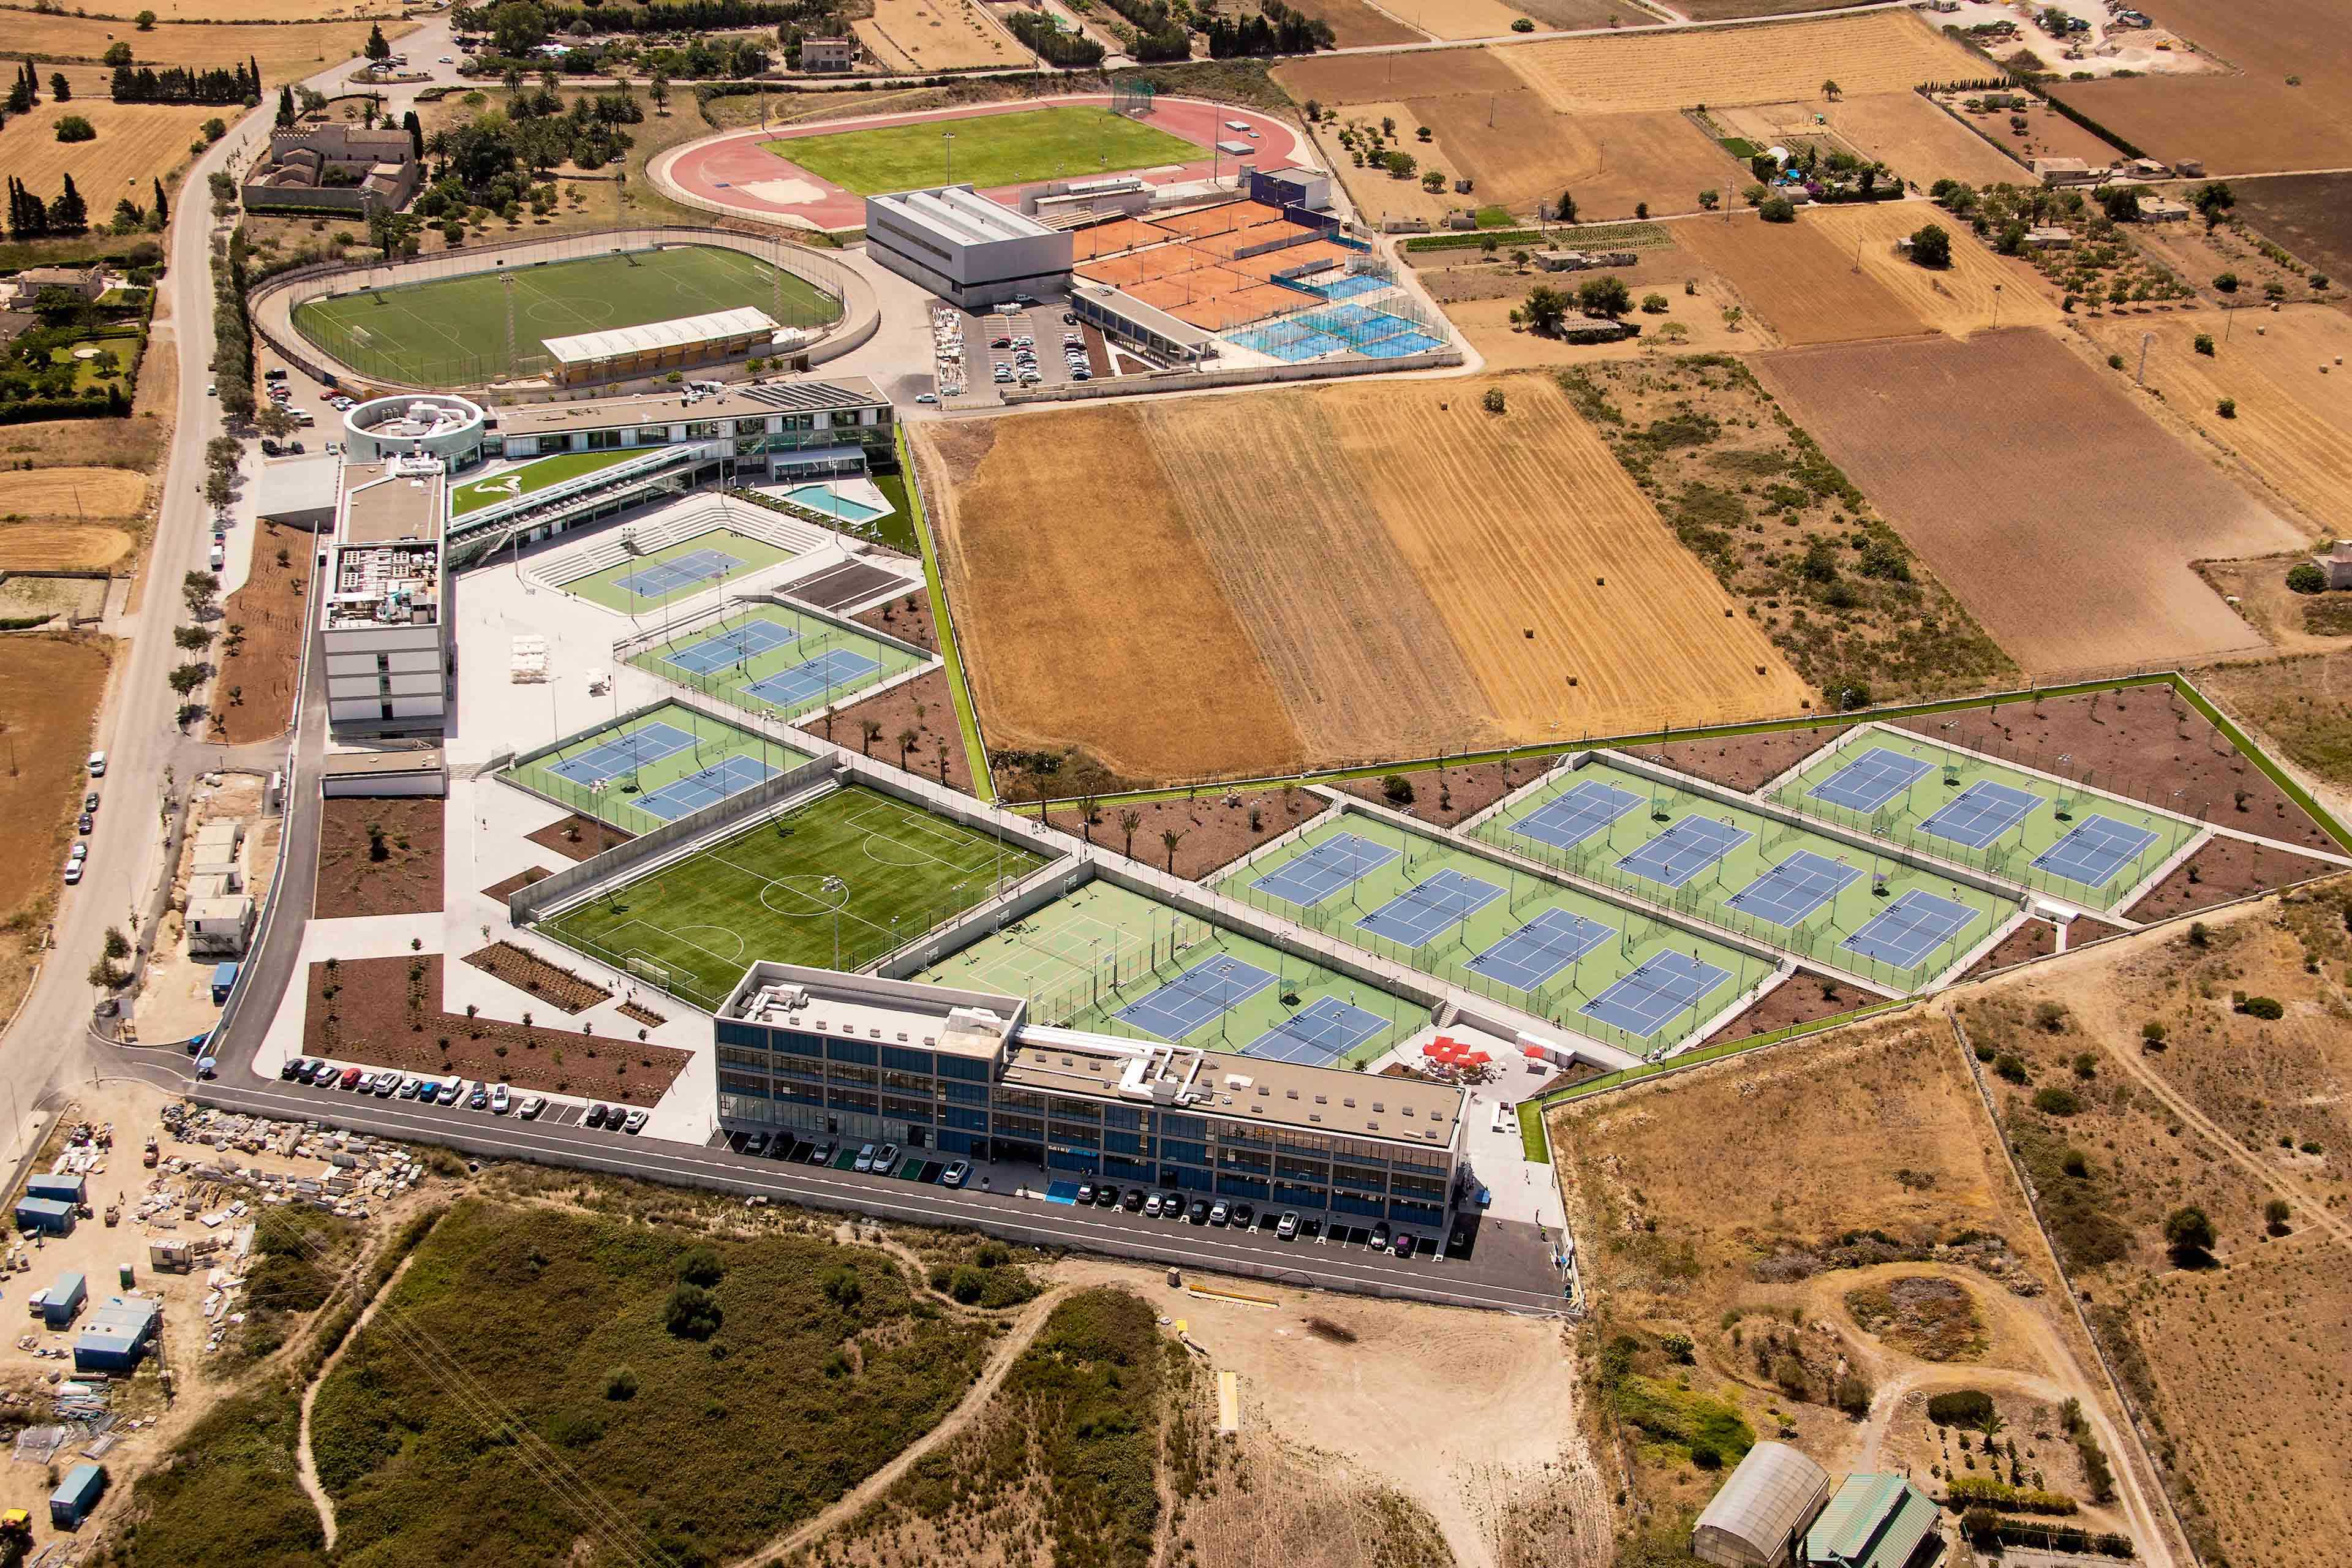 Rafa Nadal Academy by Movistar  - JO4S1018 50